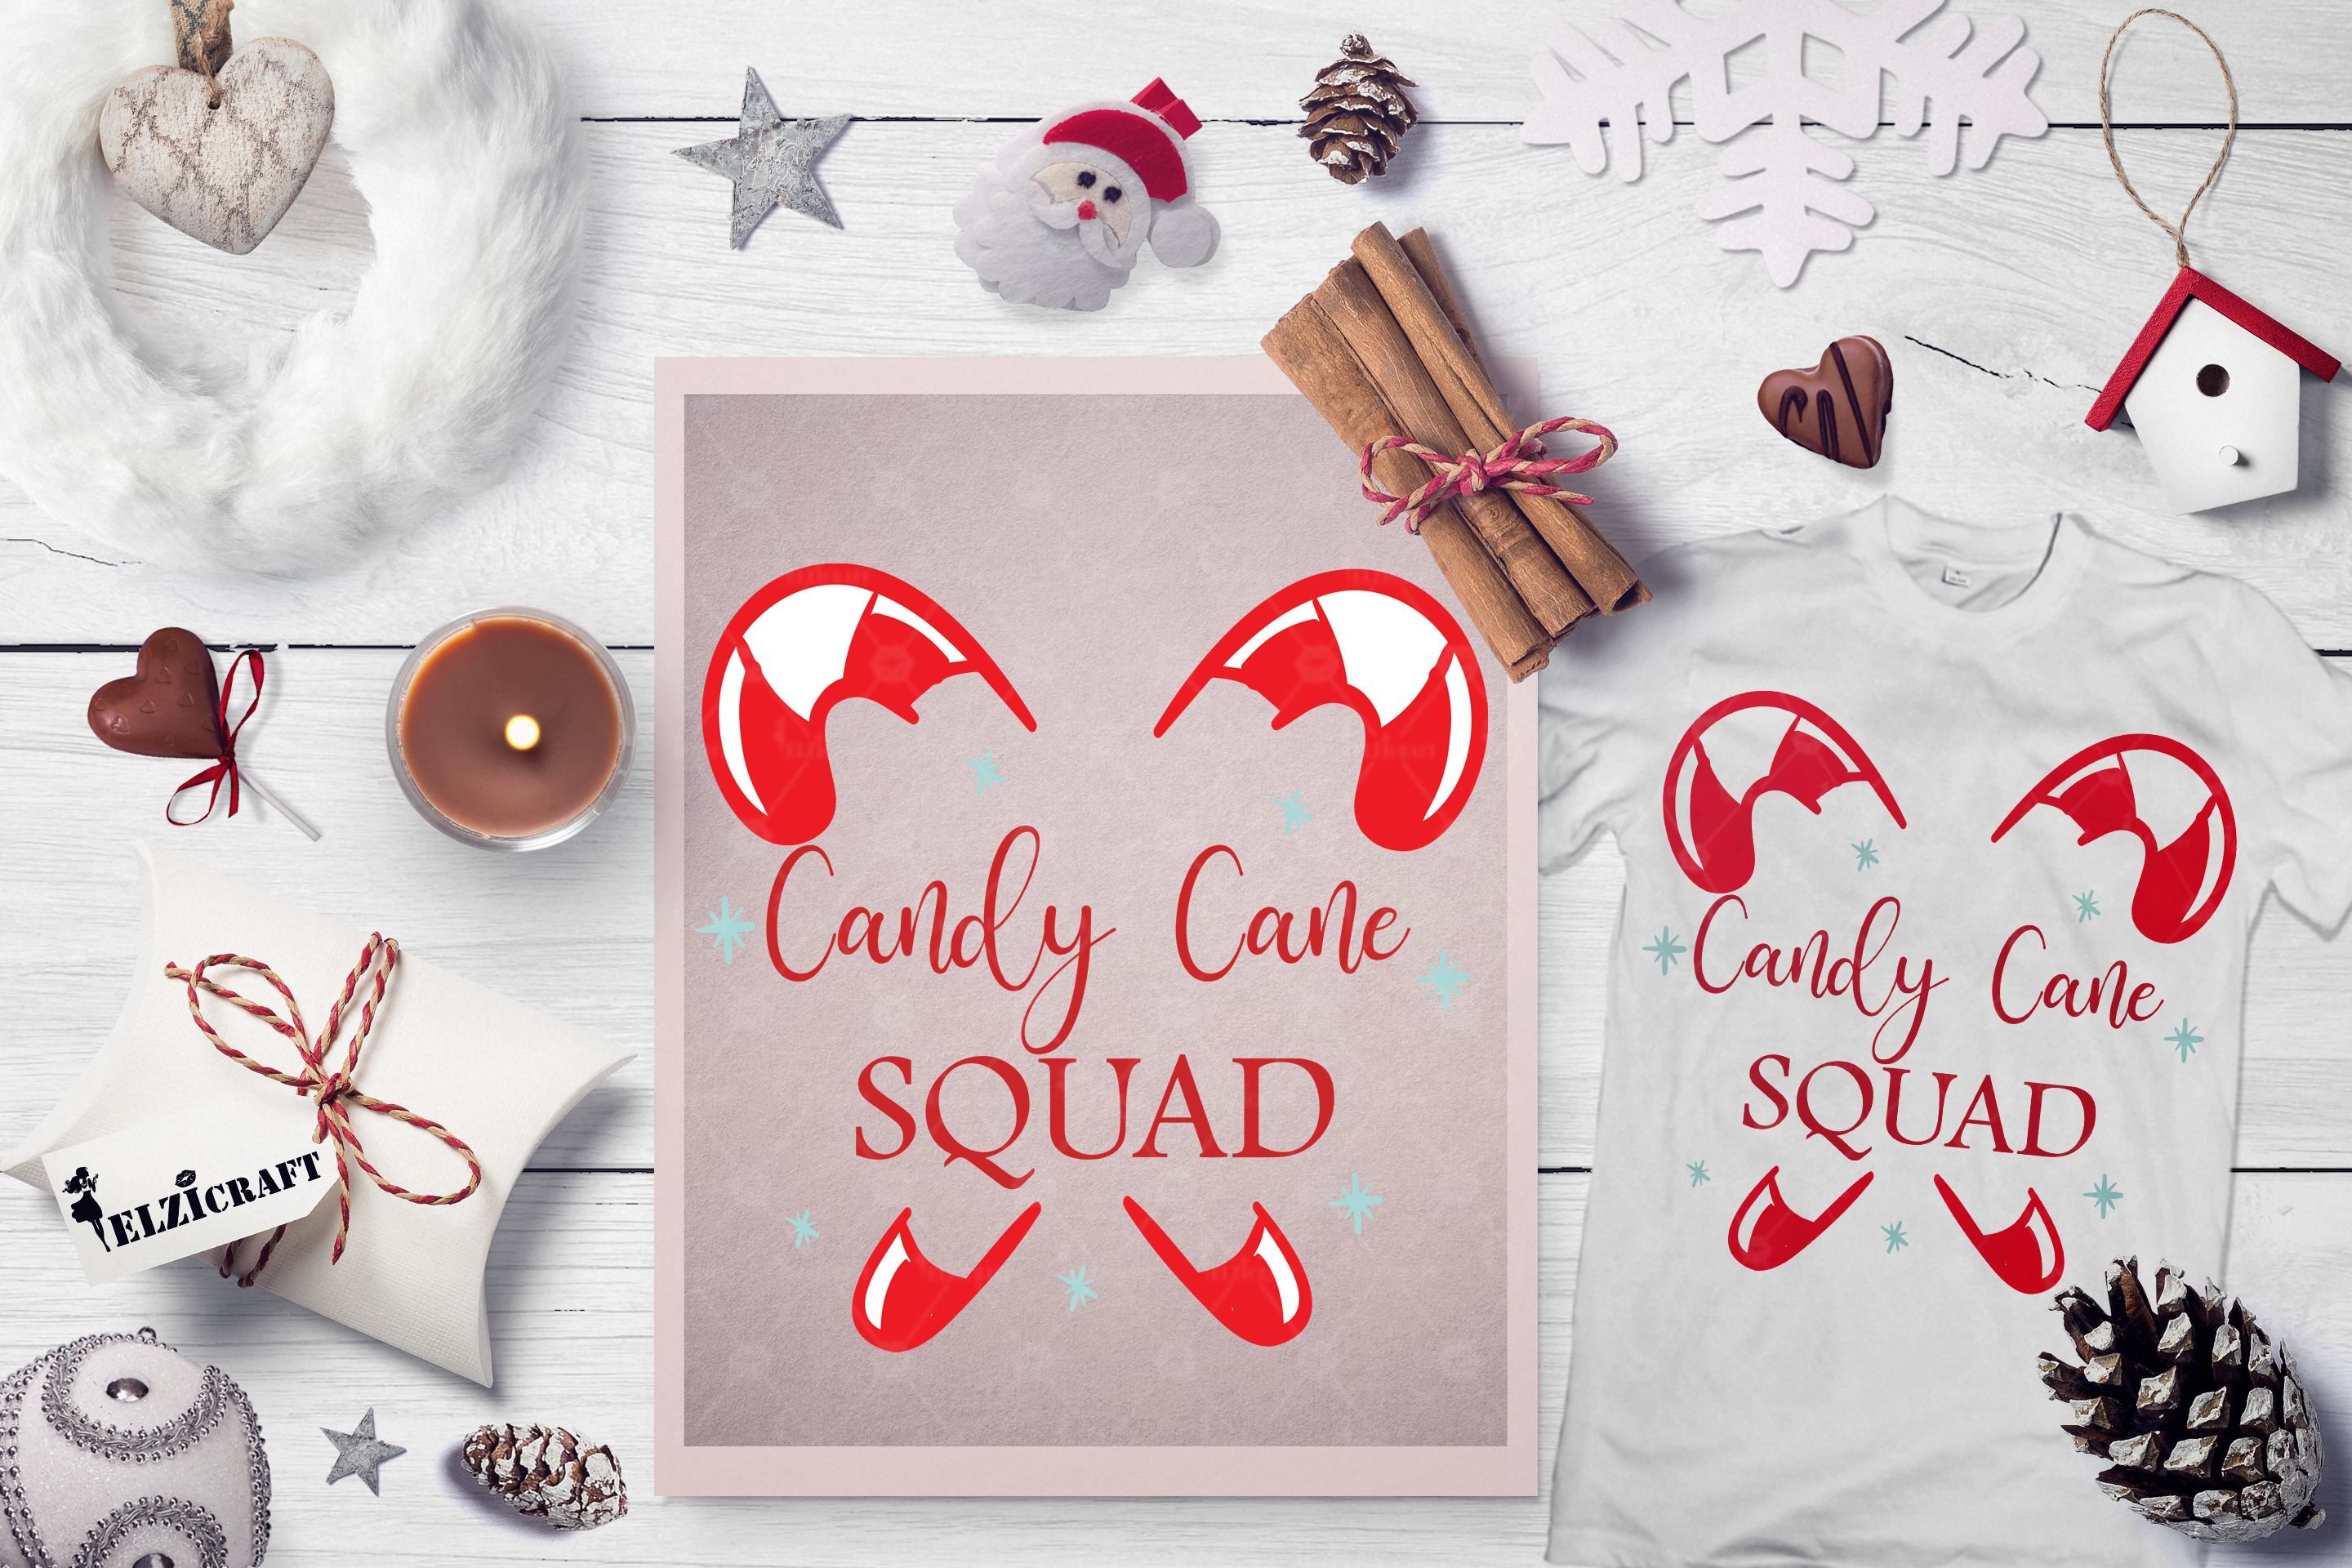 Candy Cane Squad, Christmas, Winter (Graphic) by elzicraft